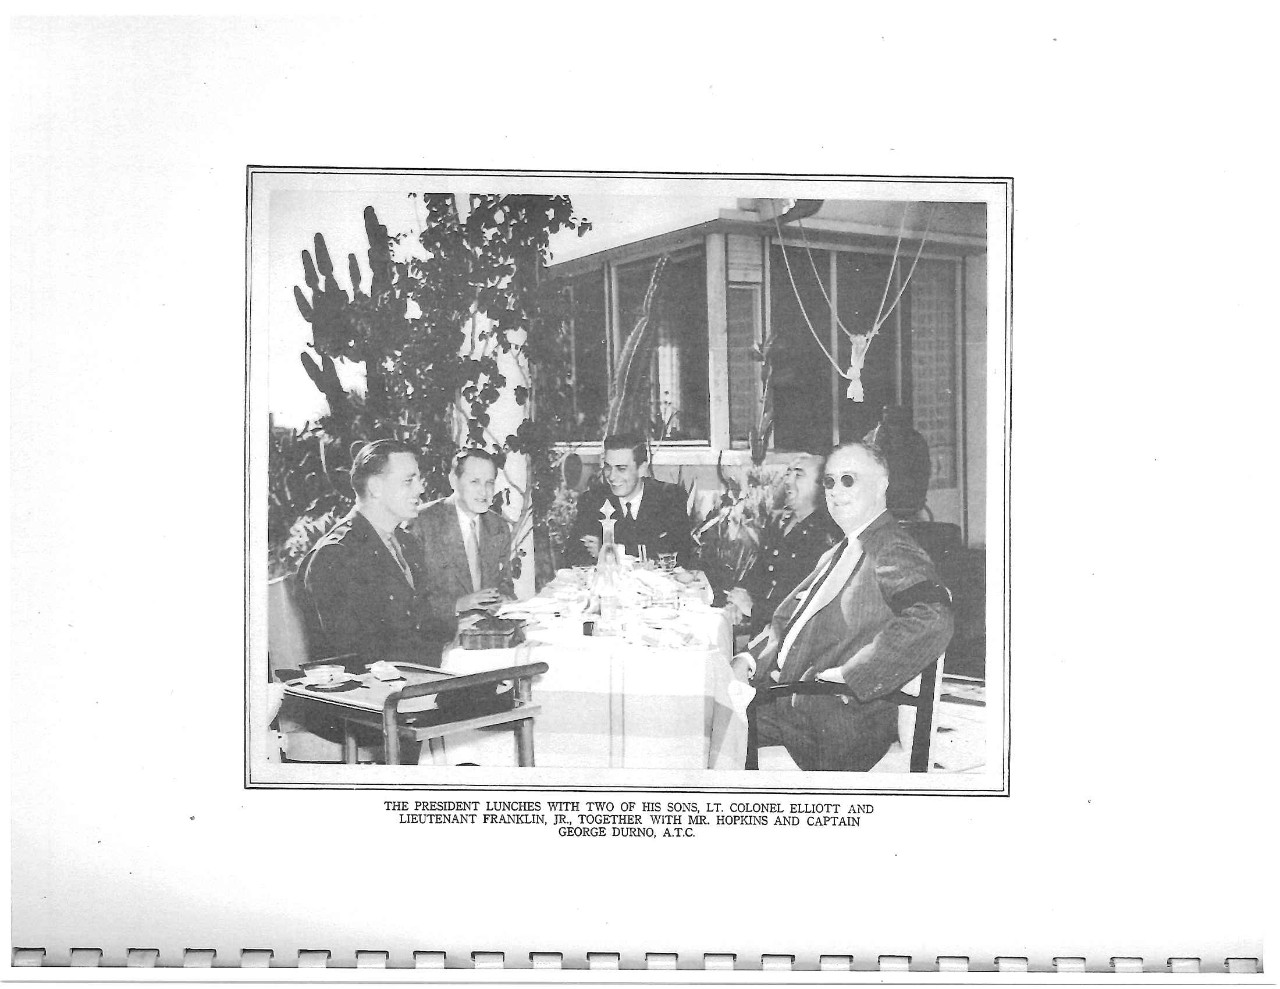 The President lunches with his sons and Lt. Colonel Elliott and Lt. Franklin Jr., together with Mr. Hopkins and Capt George Durno